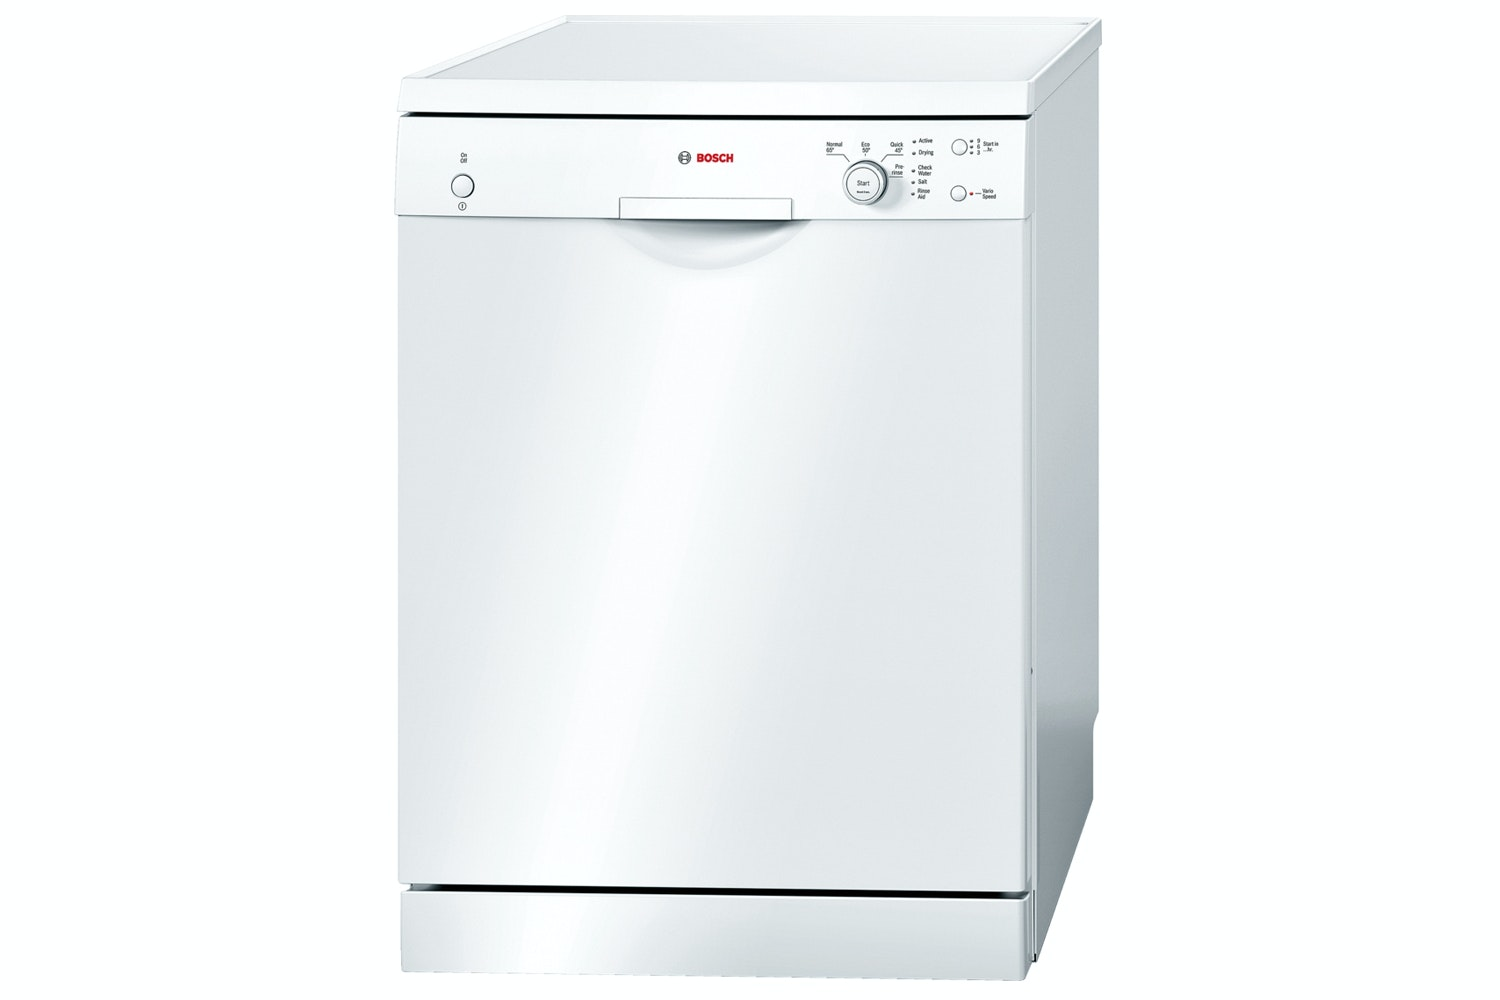 Bosch 60cm Freestanding Dishwasher | SMS40C32GB